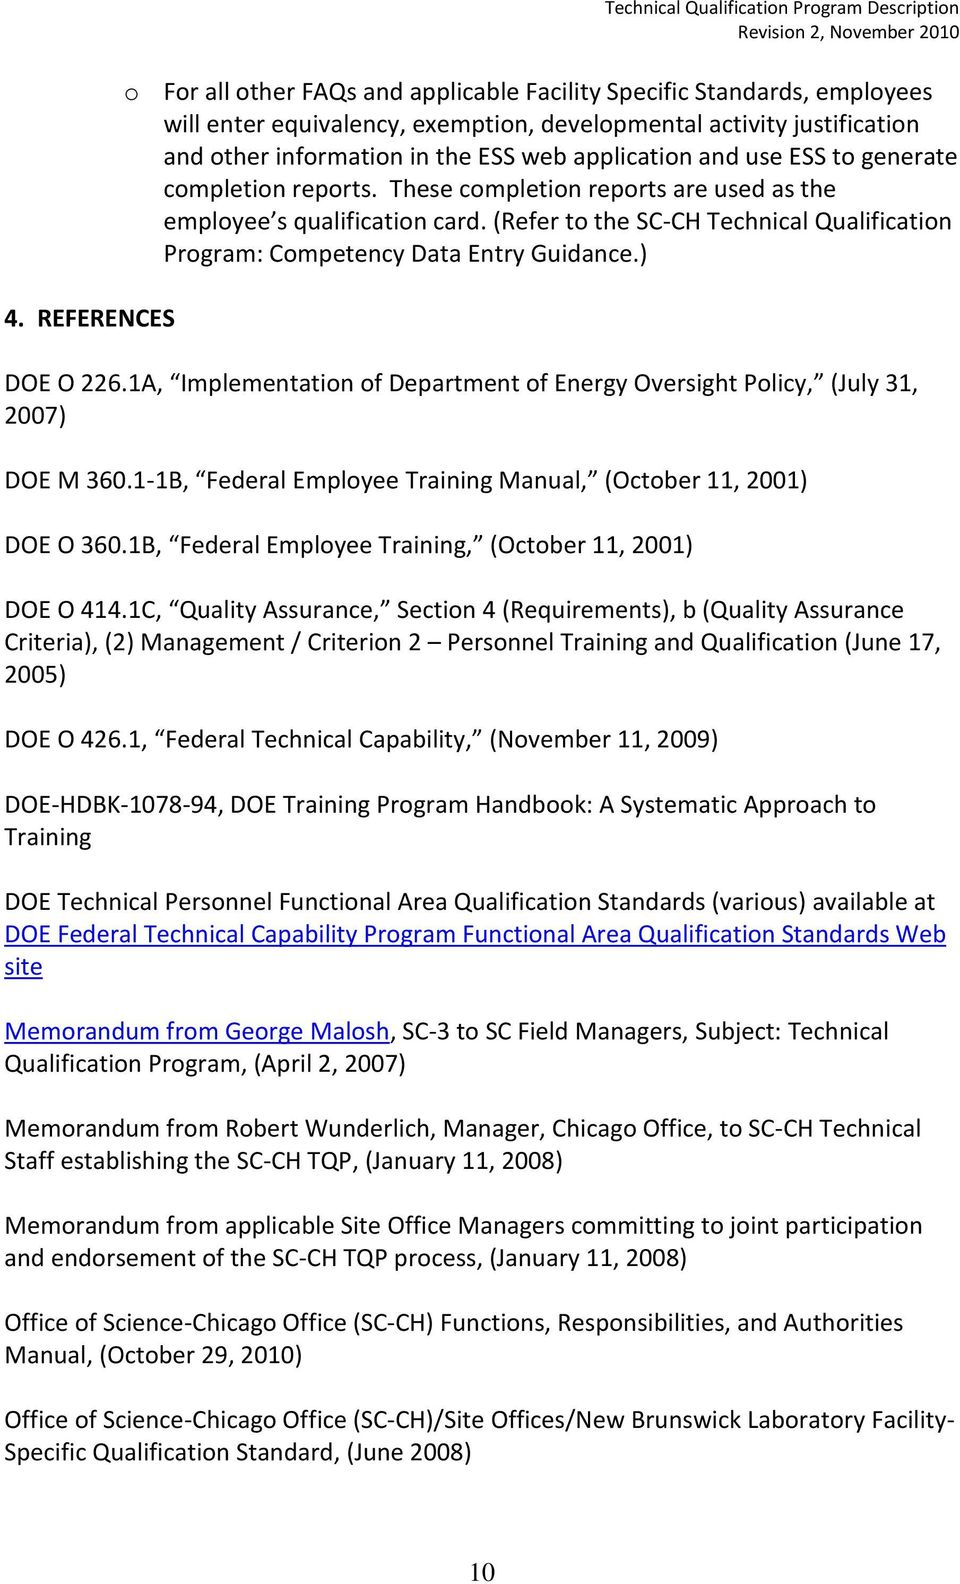 (Refer to the SC-CH Technical Qualification Program: Competency Data Entry Guidance.) DOE O 226.1A, Implementation of Department of Energy Oversight Policy, (July 31, 2007) DOE M 360.